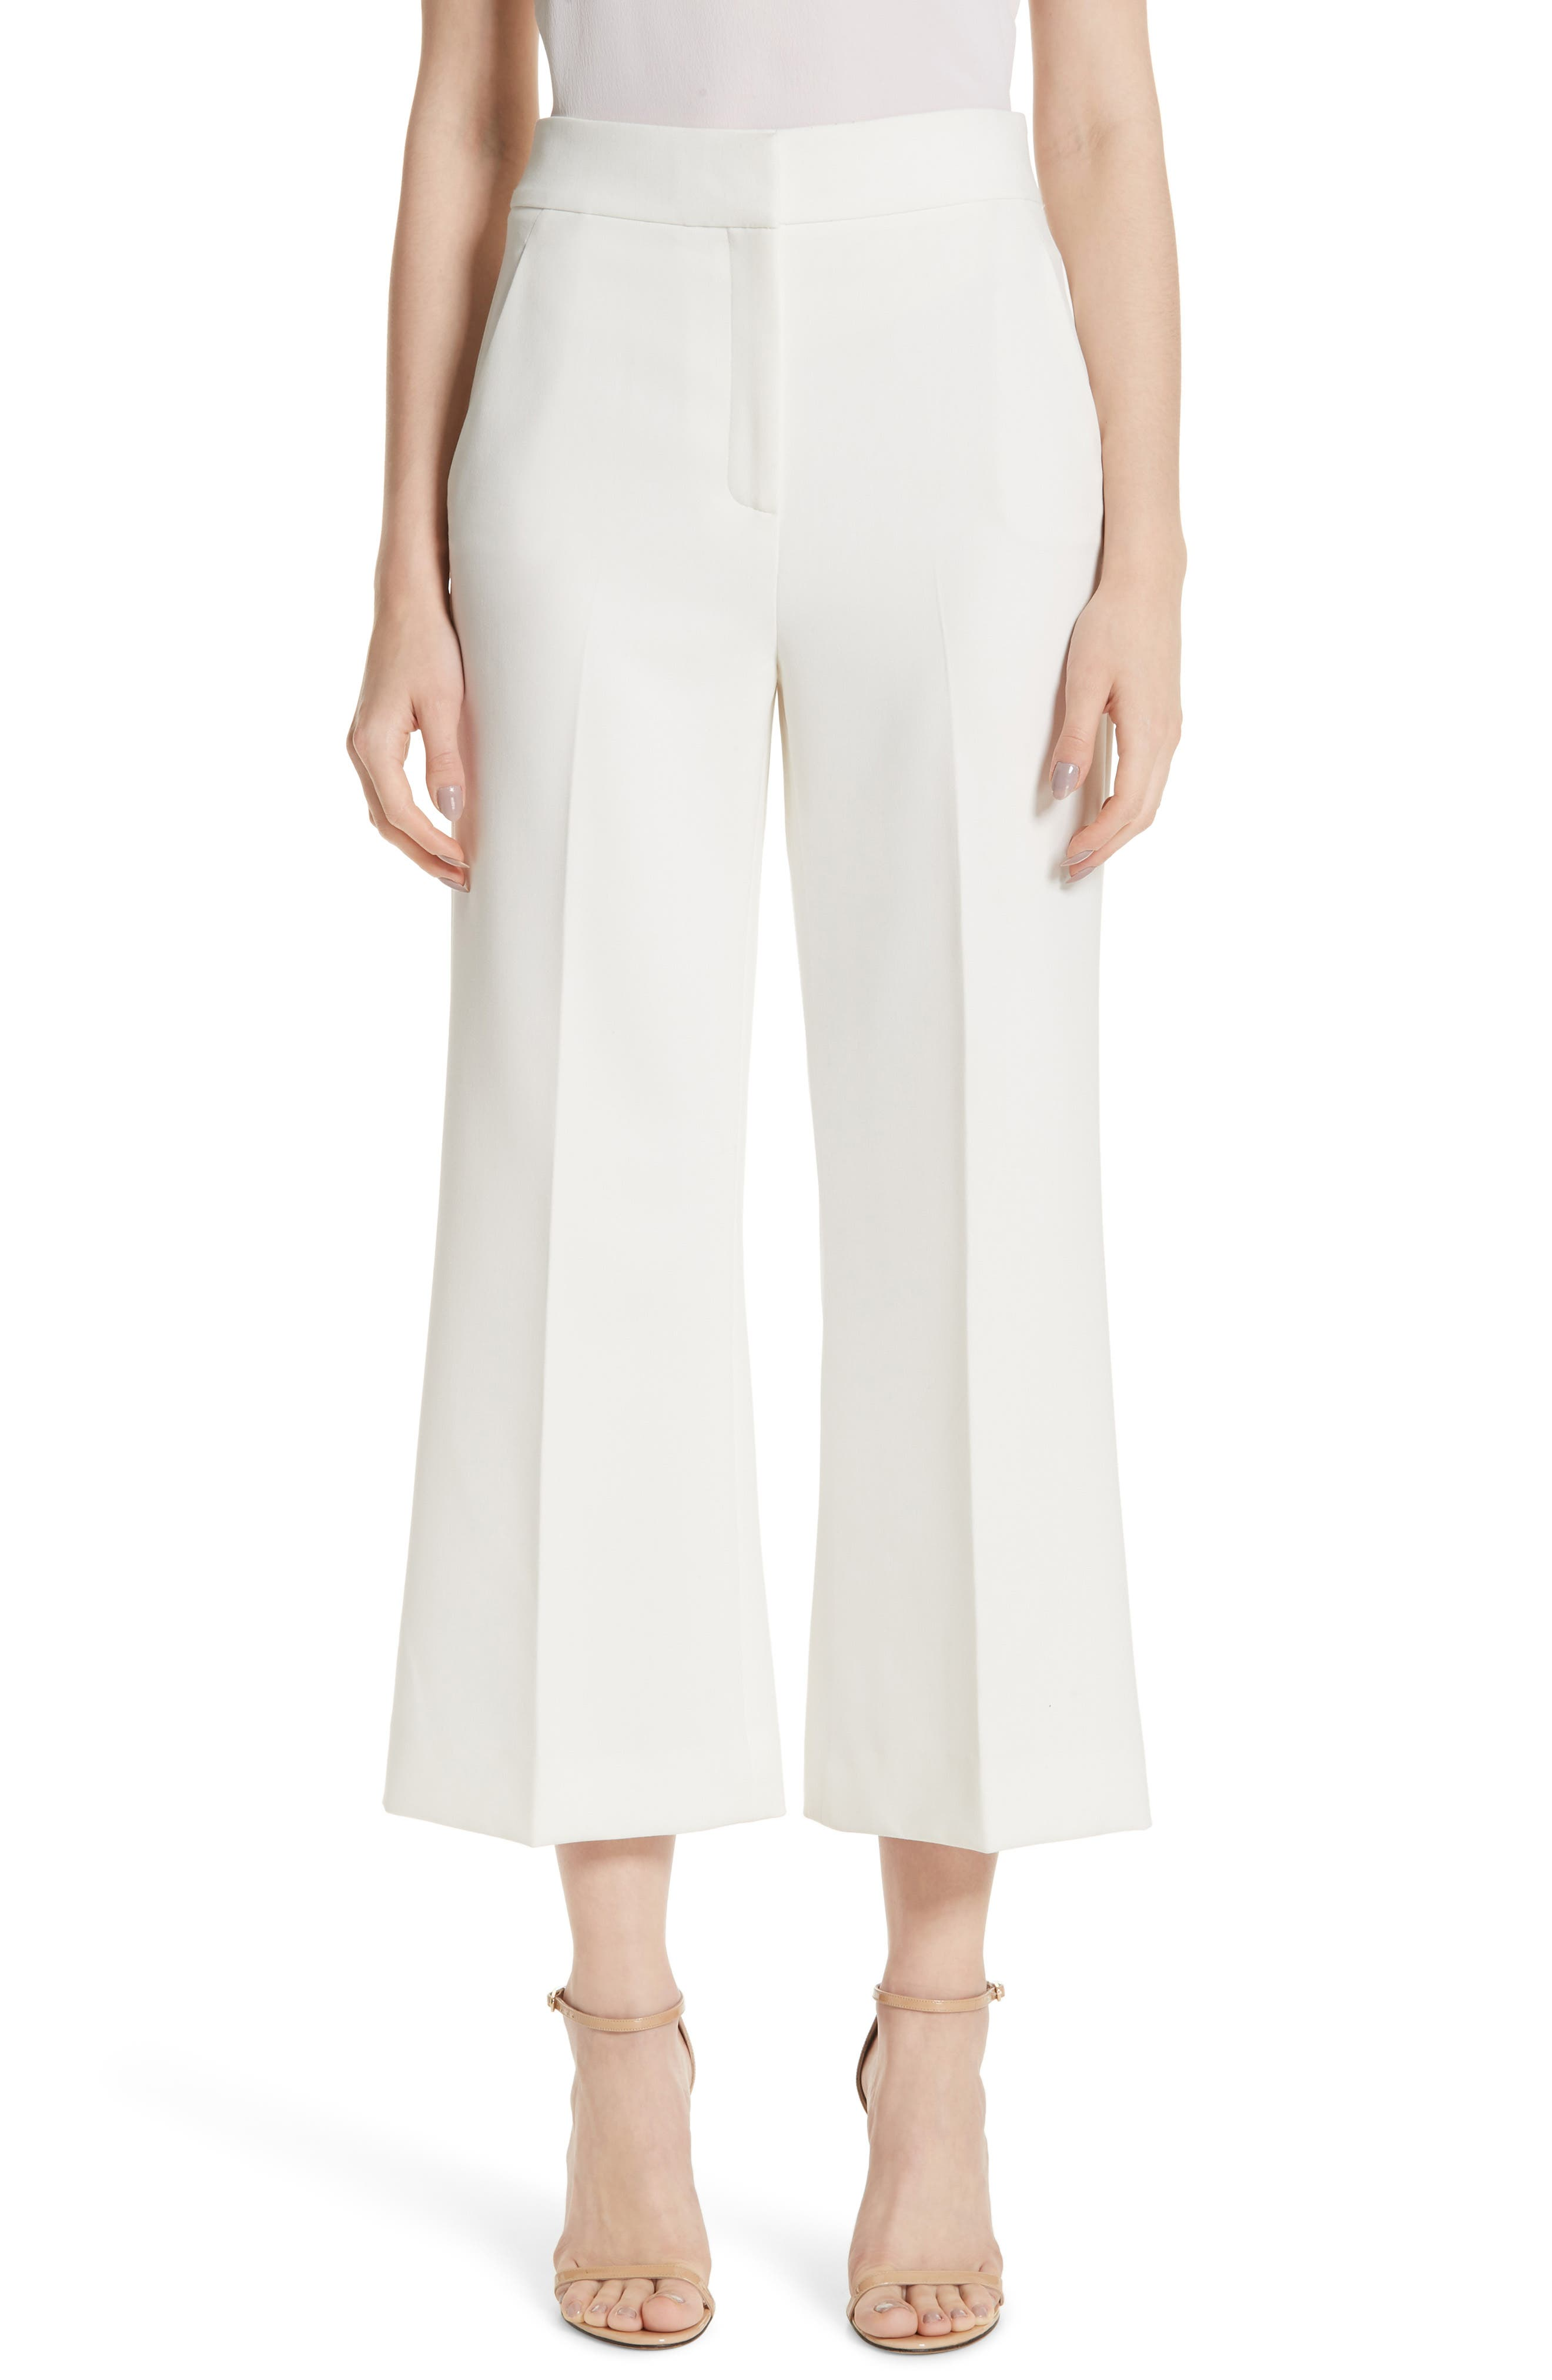 ST. JOHN COLLECTION Bella Double Weave Crop Flare Pants, Main, color, CREAM